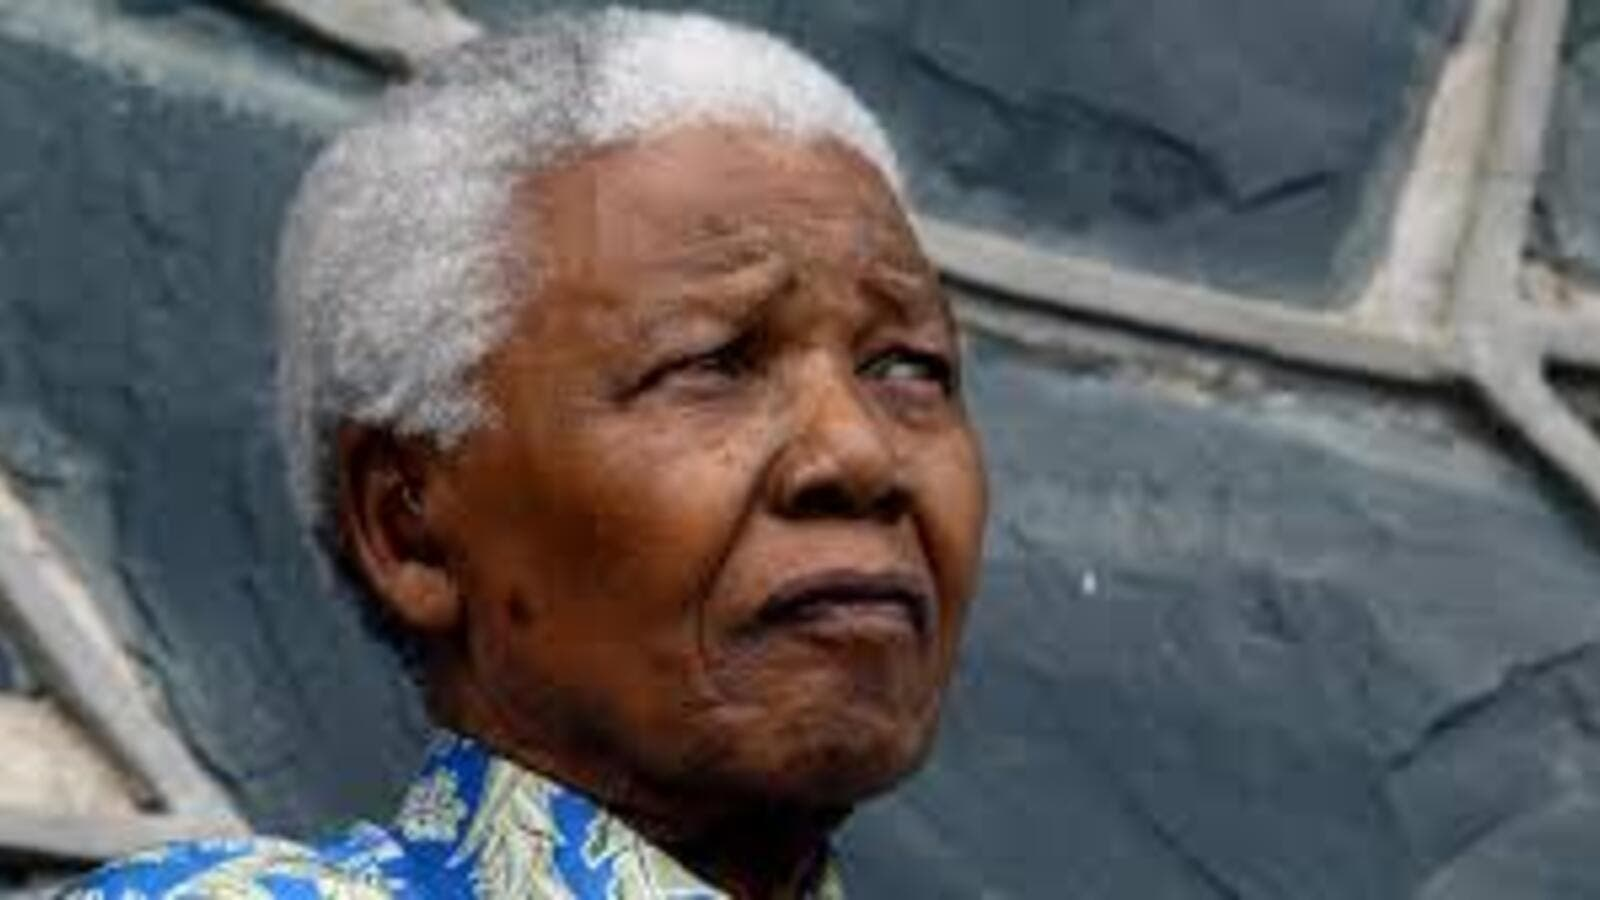 Lebanon's national day of mourning for Mandela coincides with South Africa's mass for the late former president in Johannesburg Tuesday (Reuters)